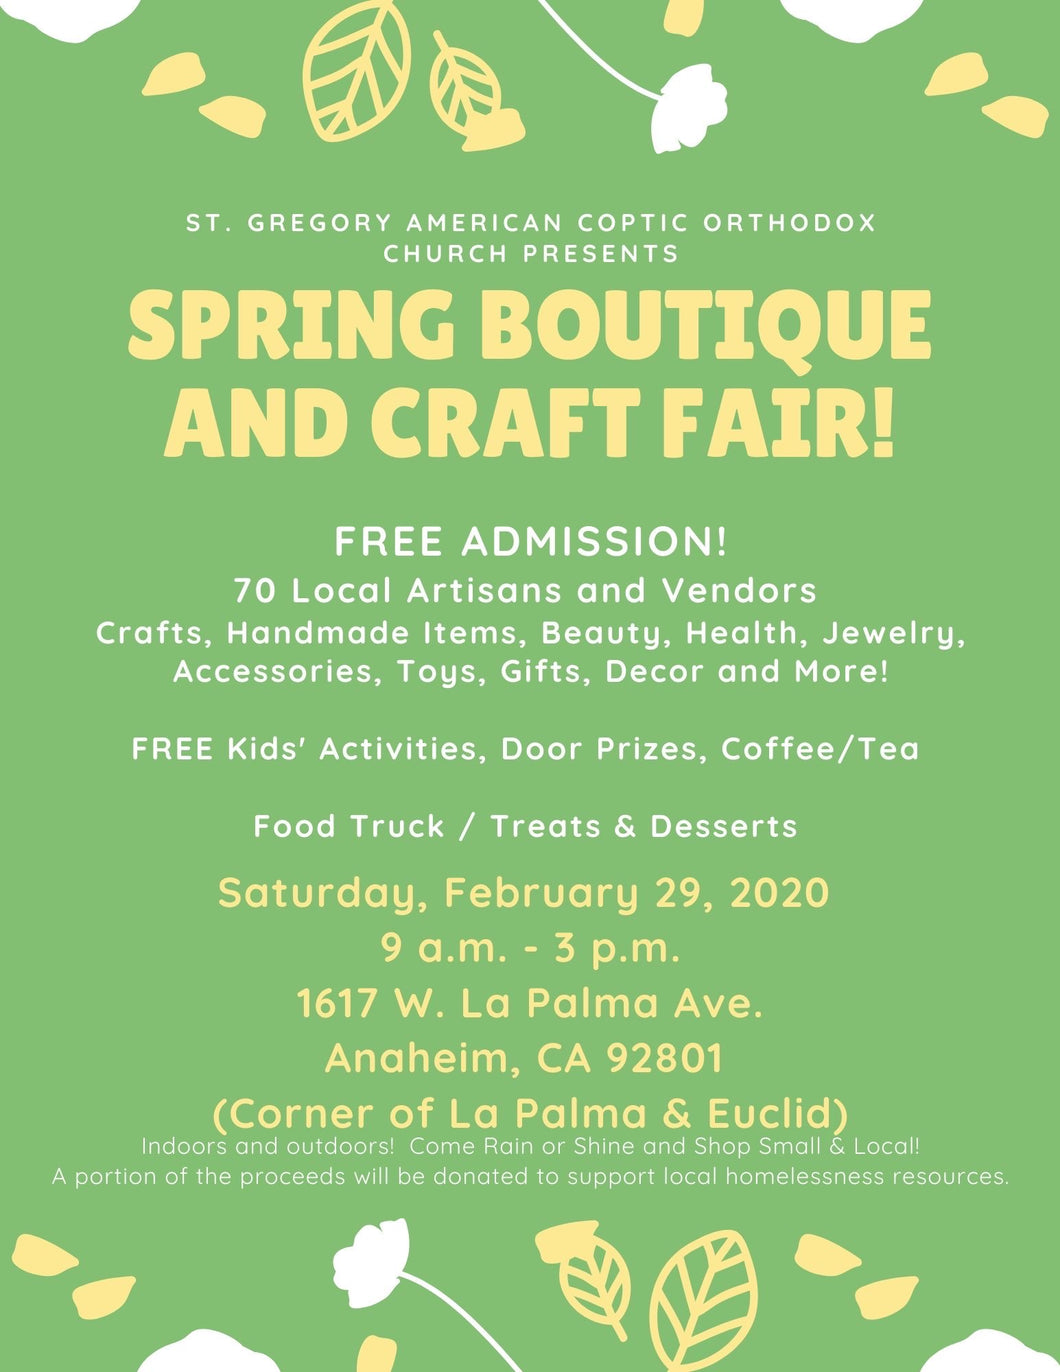 Spring Boutique and Craft Fair free admission Saturday February 29, 2020 (am to 3pm 1617 La Palma Ave. Anaheim, Ca 92801